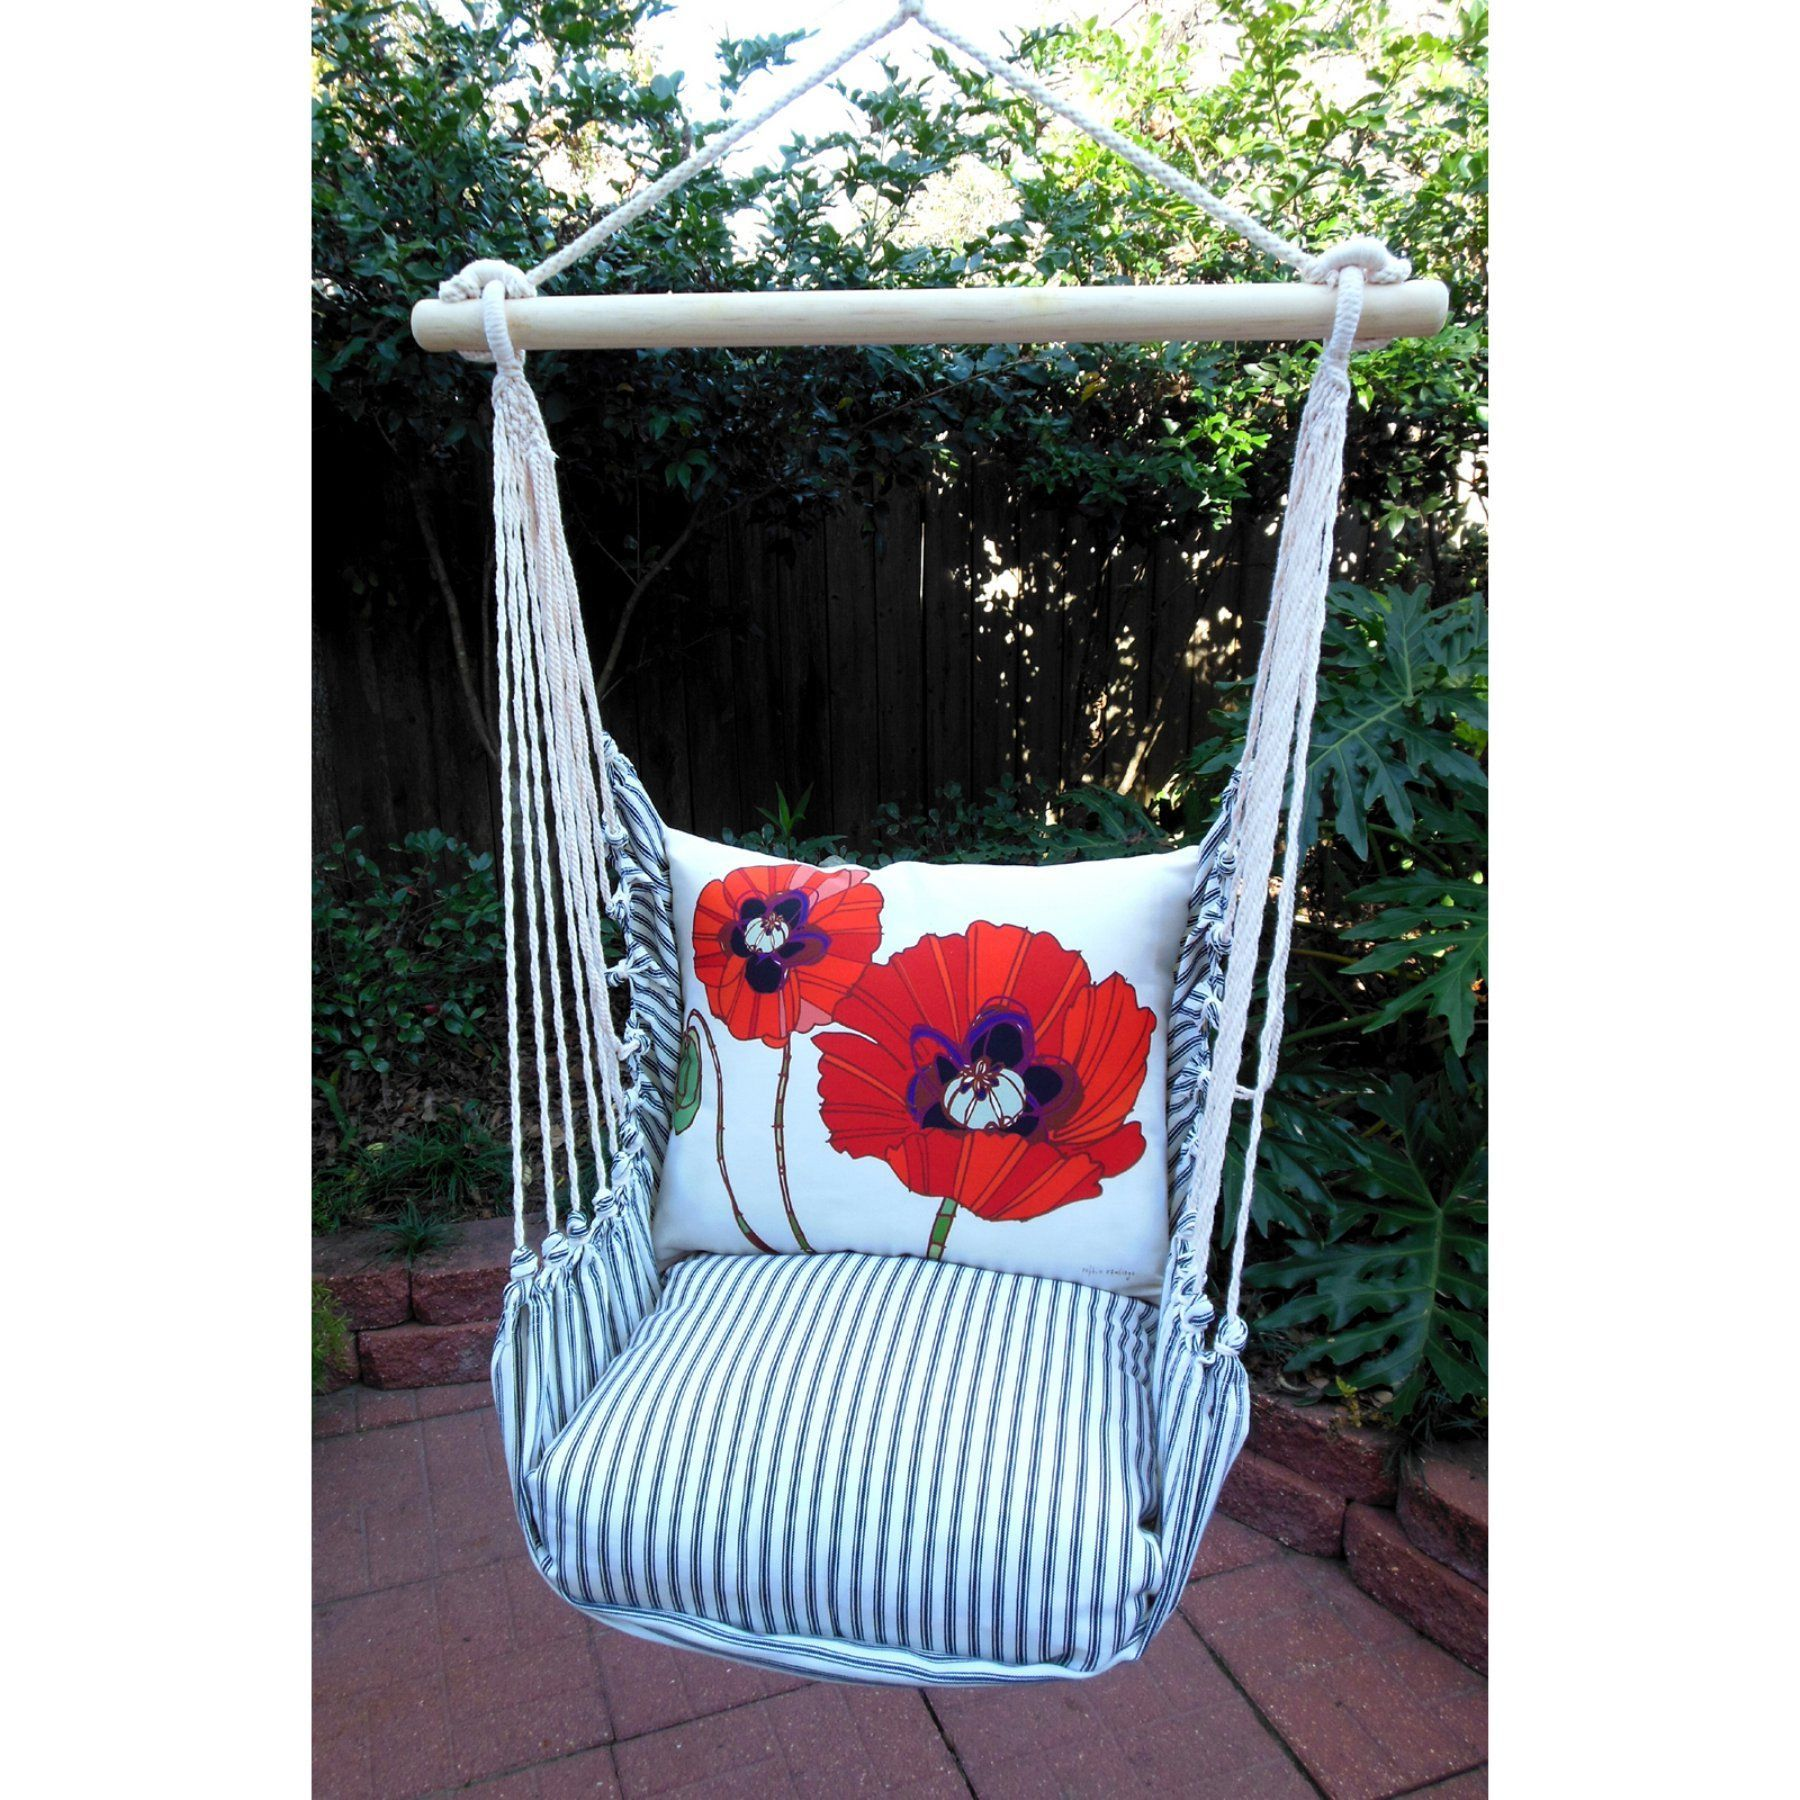 Outdoor magnolia casual flower burst hammock chair u pillow set